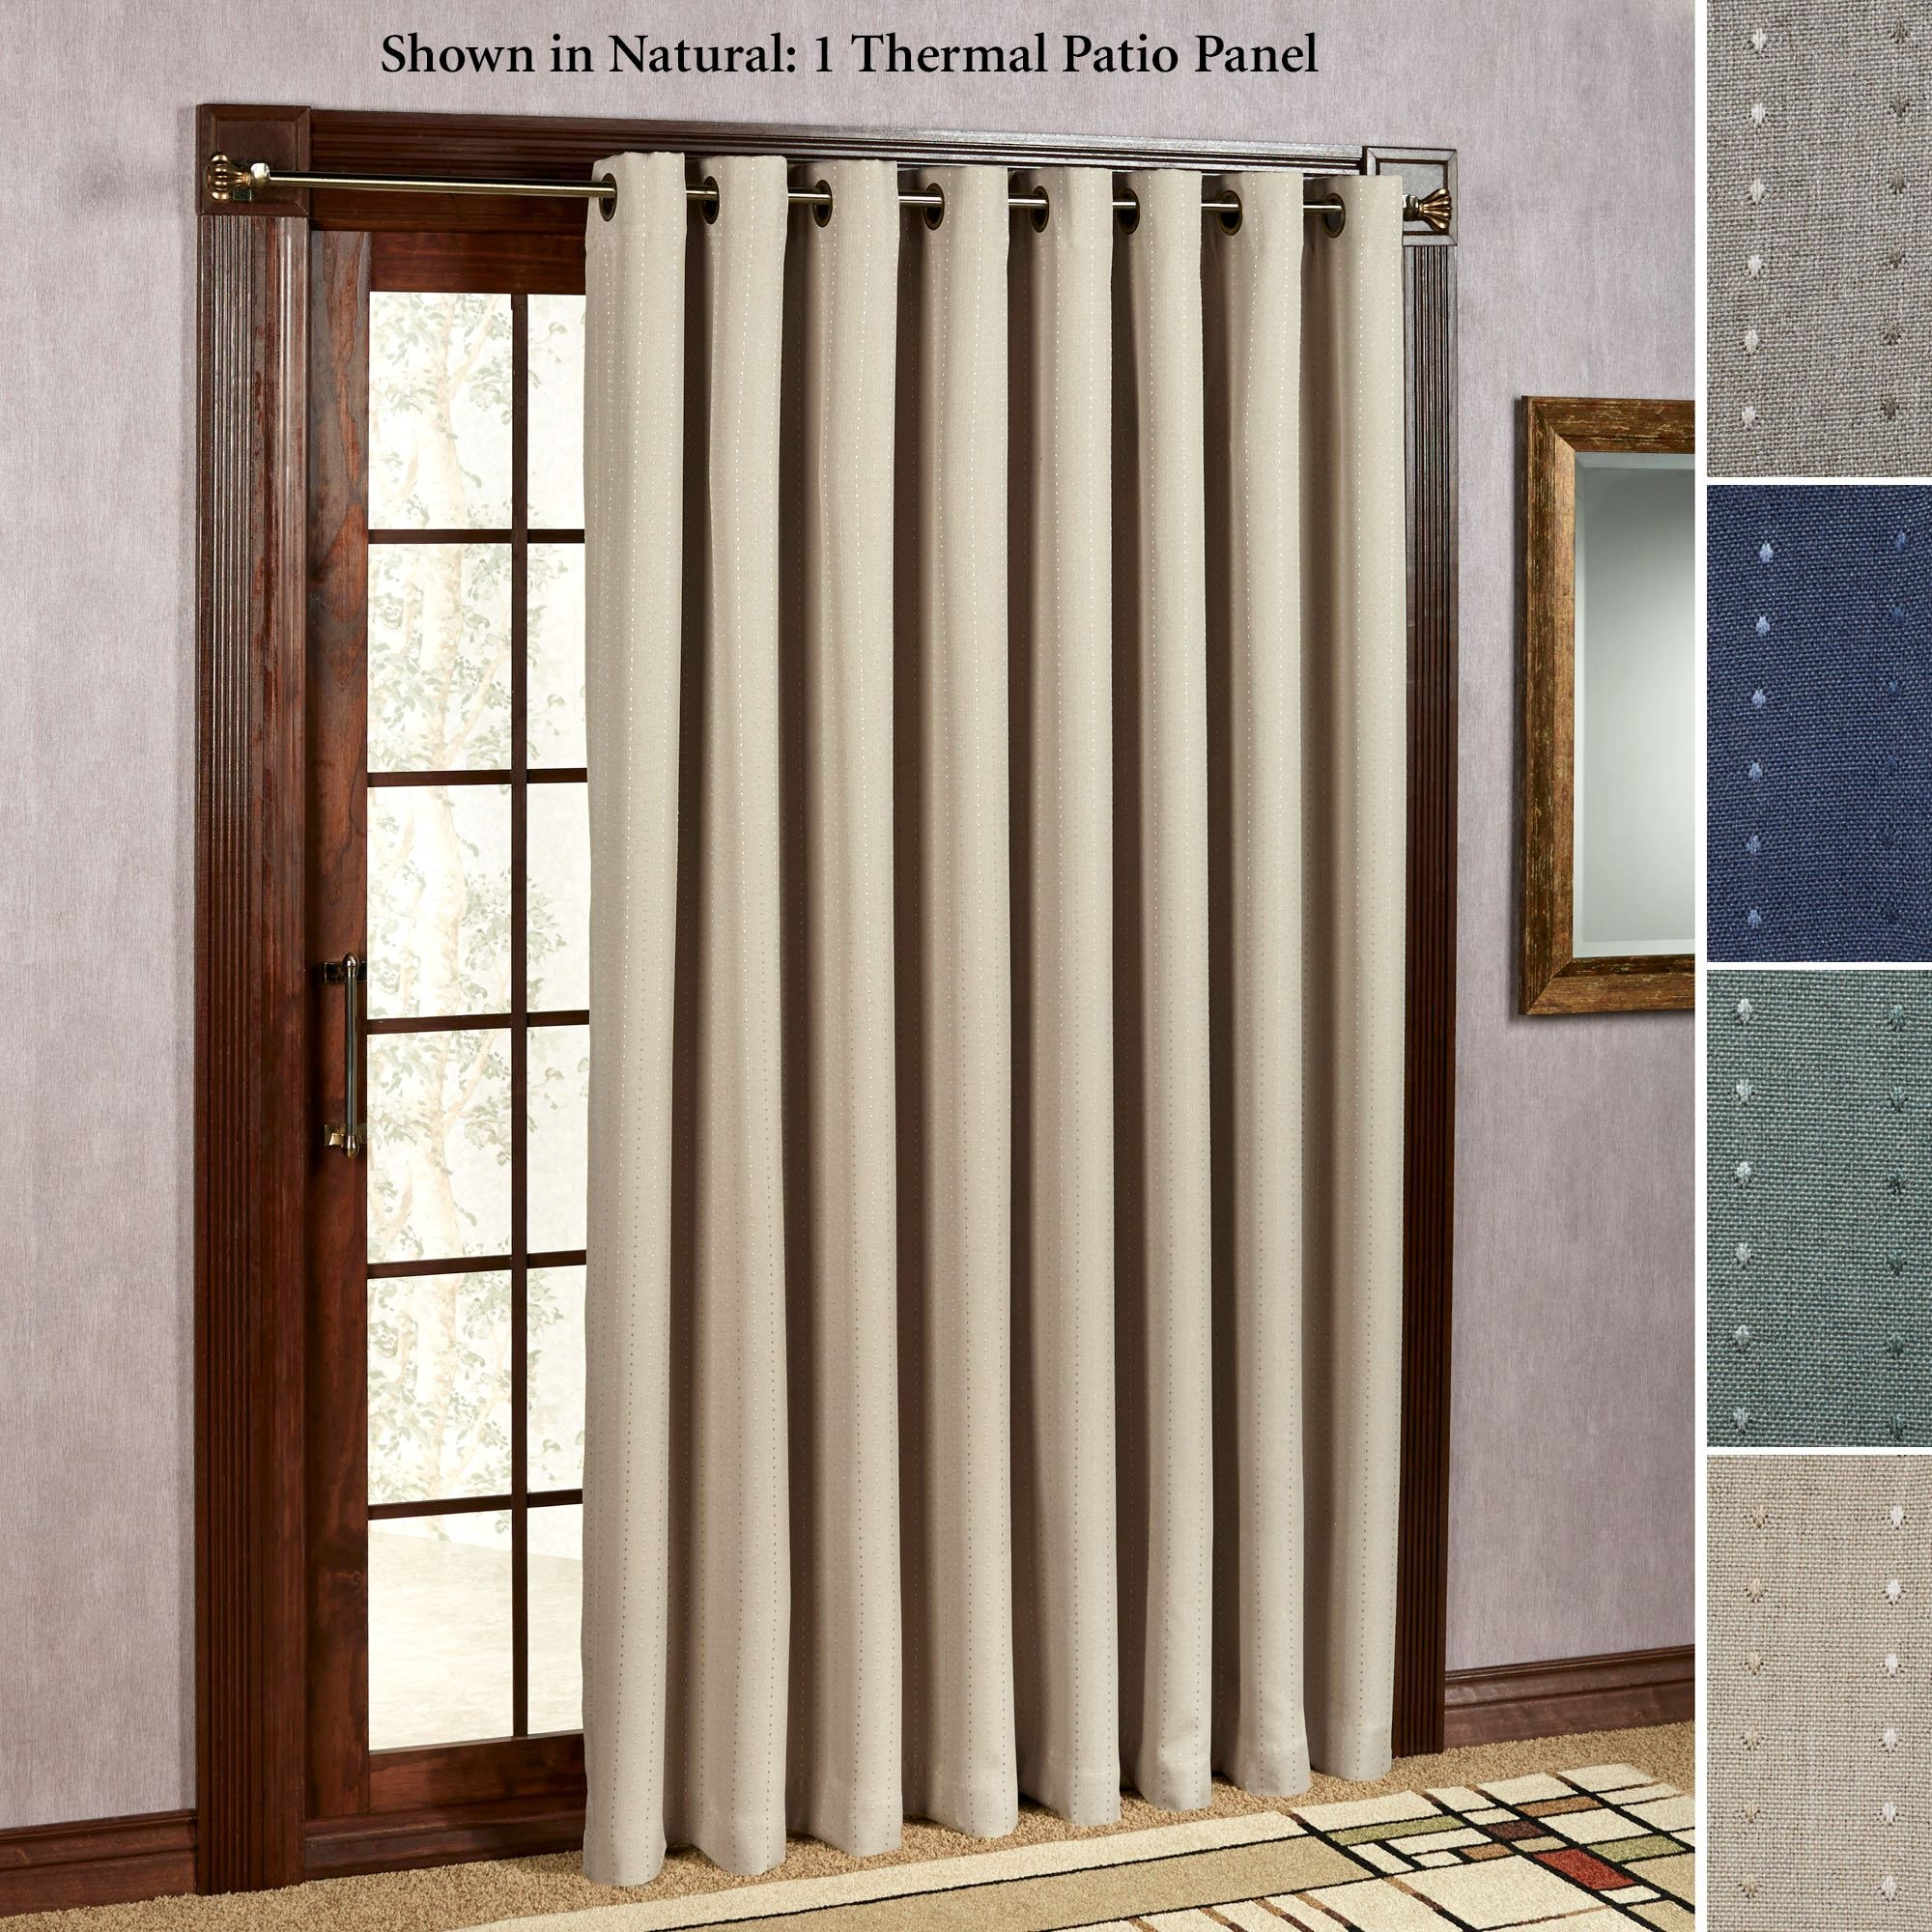 Panel Curtains For Sliding Glass Doors2000 X 2000